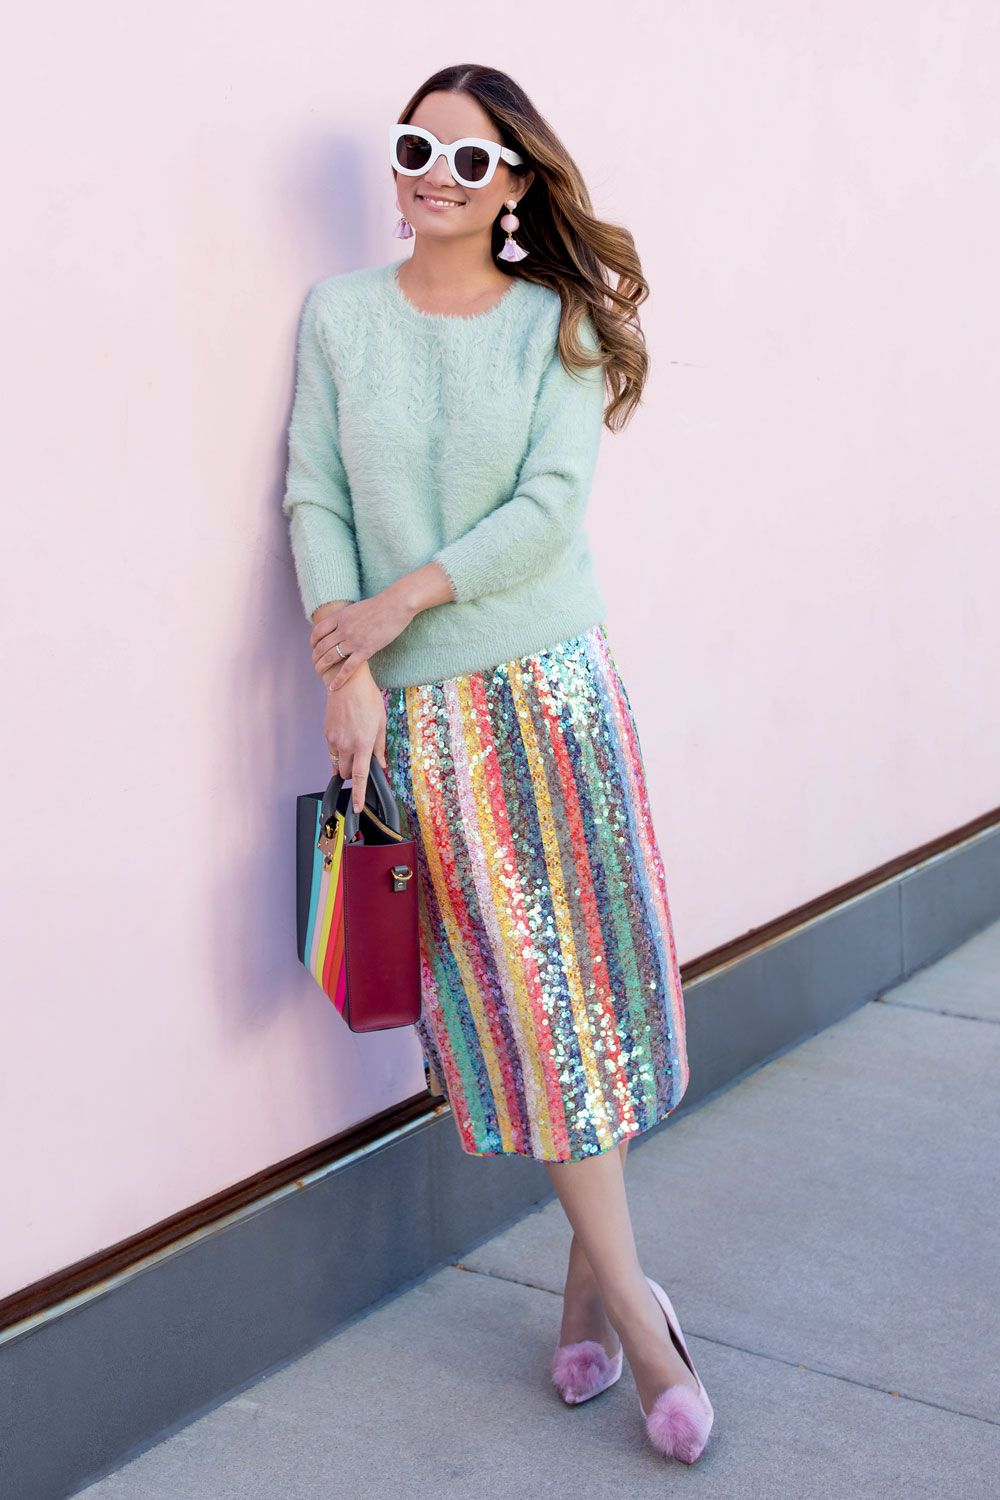 dfa1bf7a84ae Anthropologie Colorful Sequin Skirt. Anthropologie Colorful Sequin Skirt  Spring Shorts Outfits ...